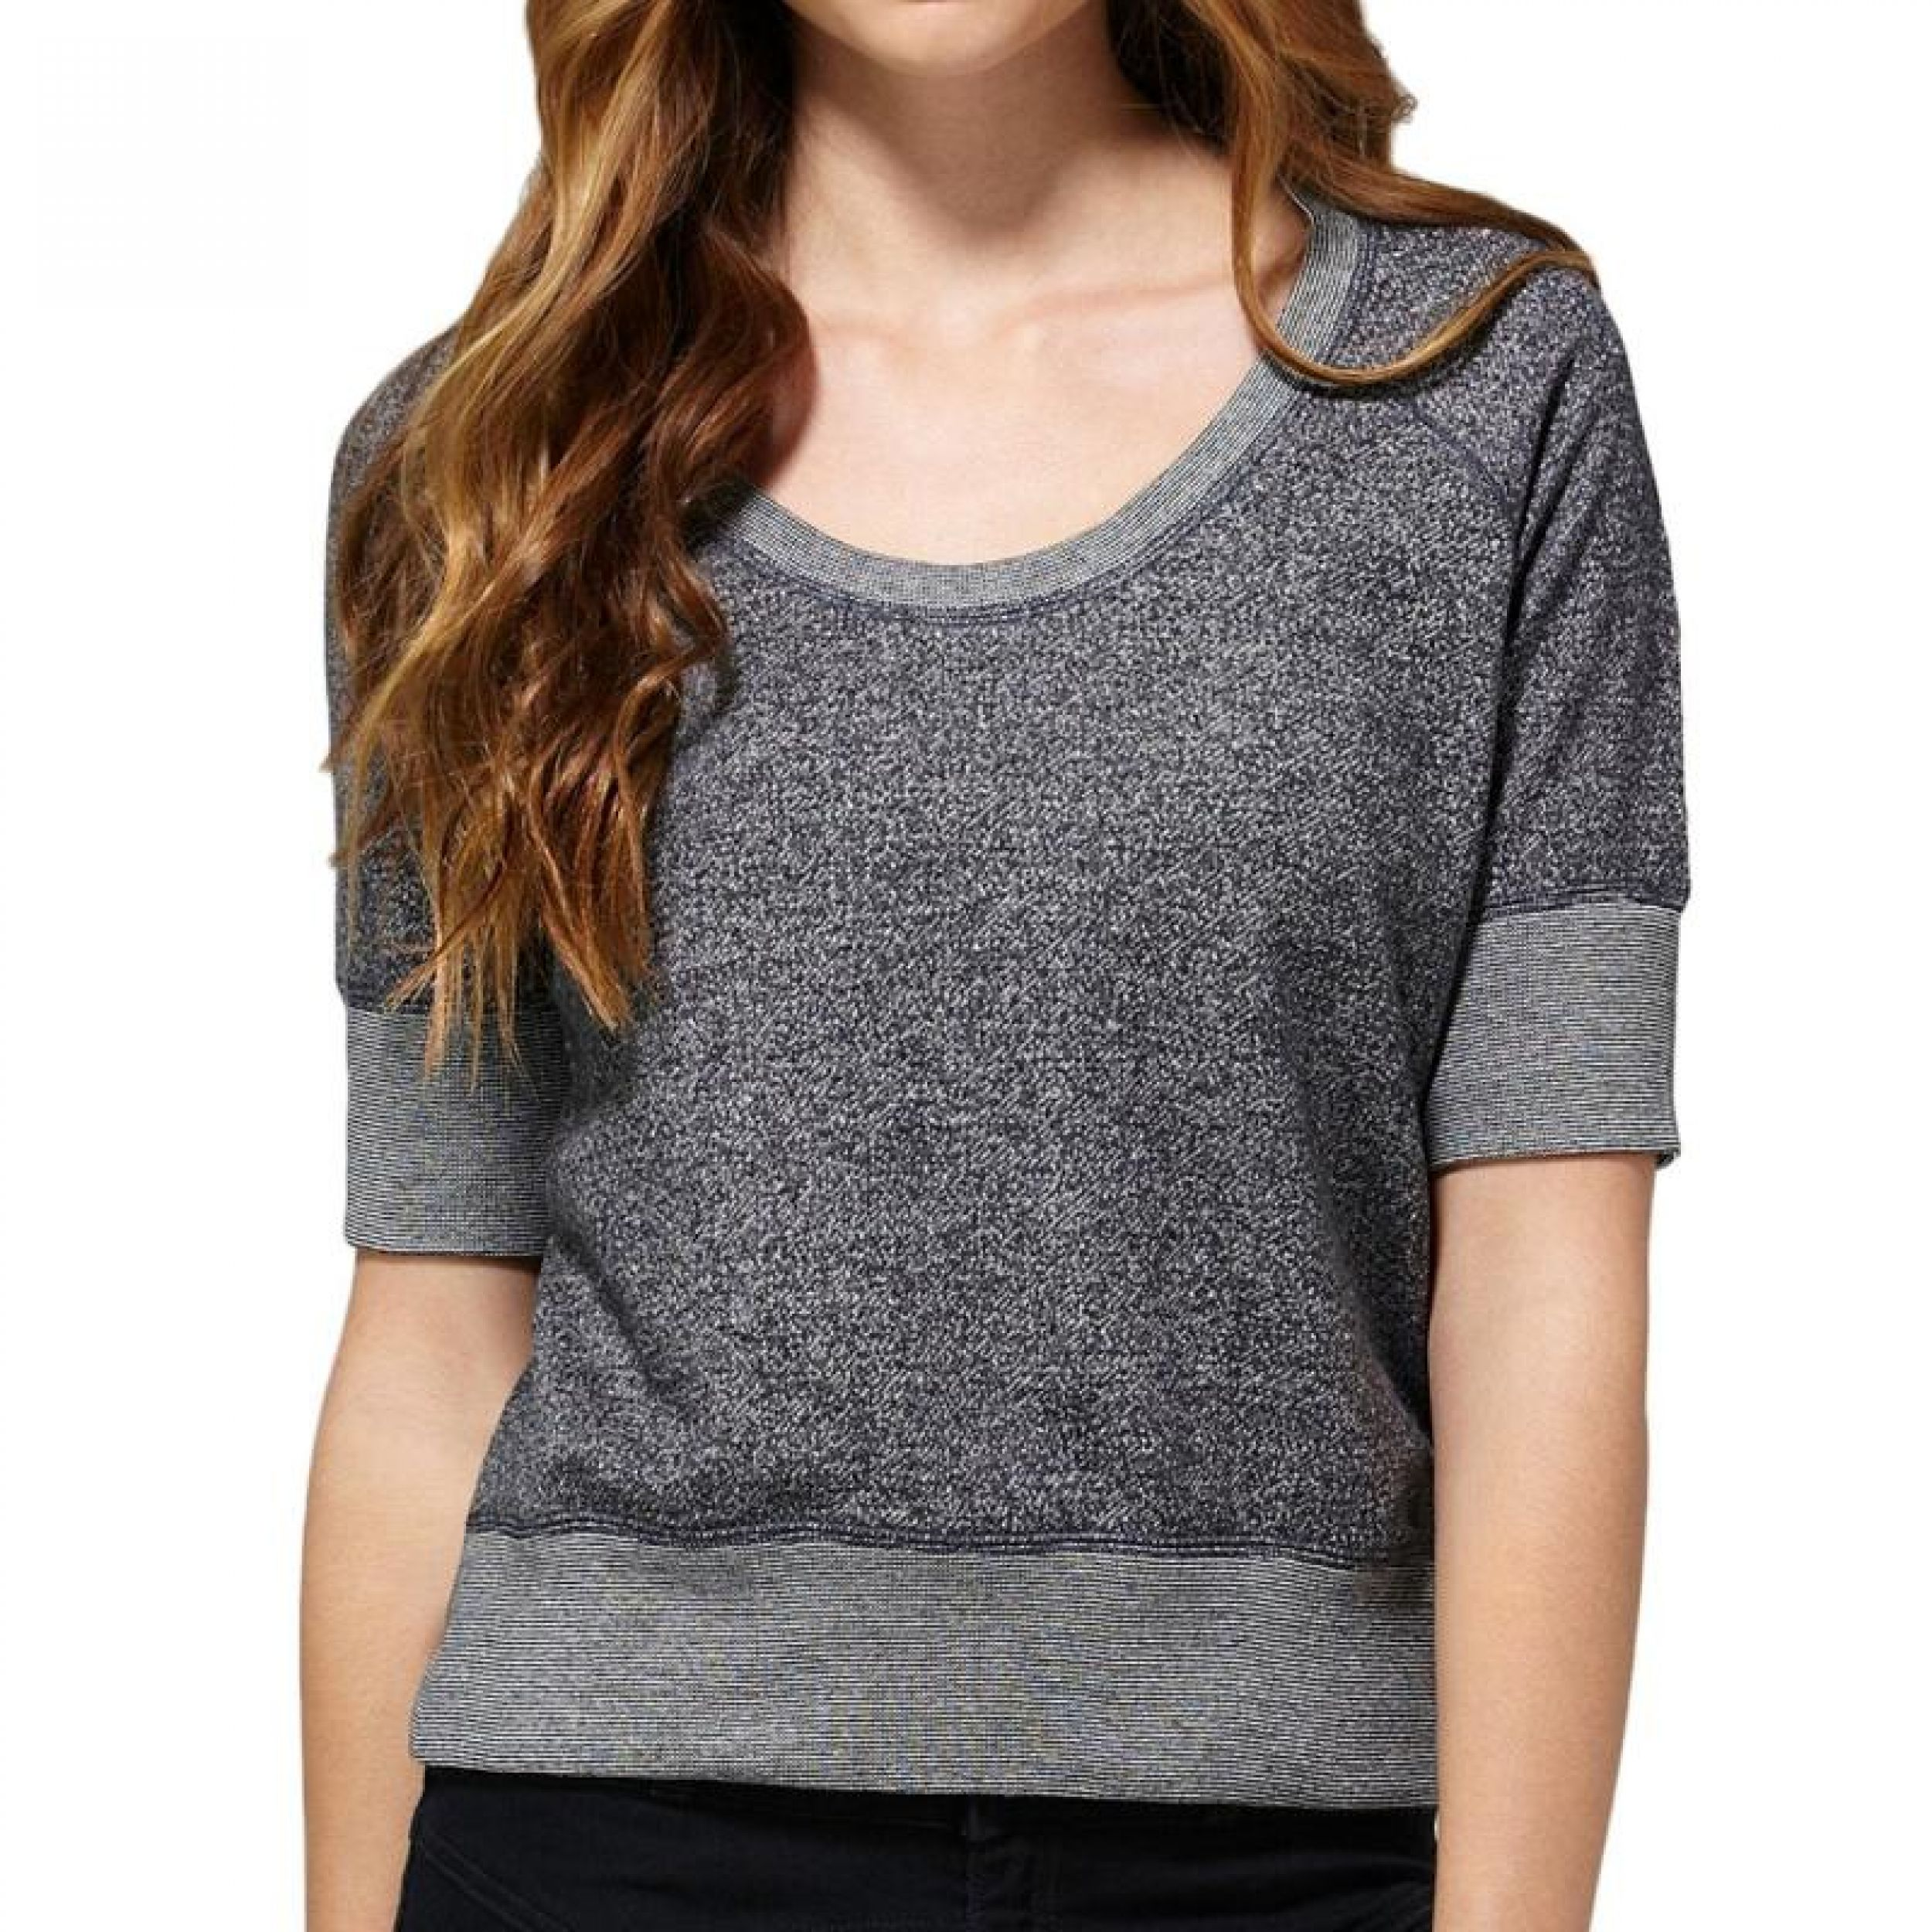 dc-shoes-champ-shirt-scoop-neck-elbow-sleeve-for-women-in-blue-graphite-marledp7644y_011500.2.jpg